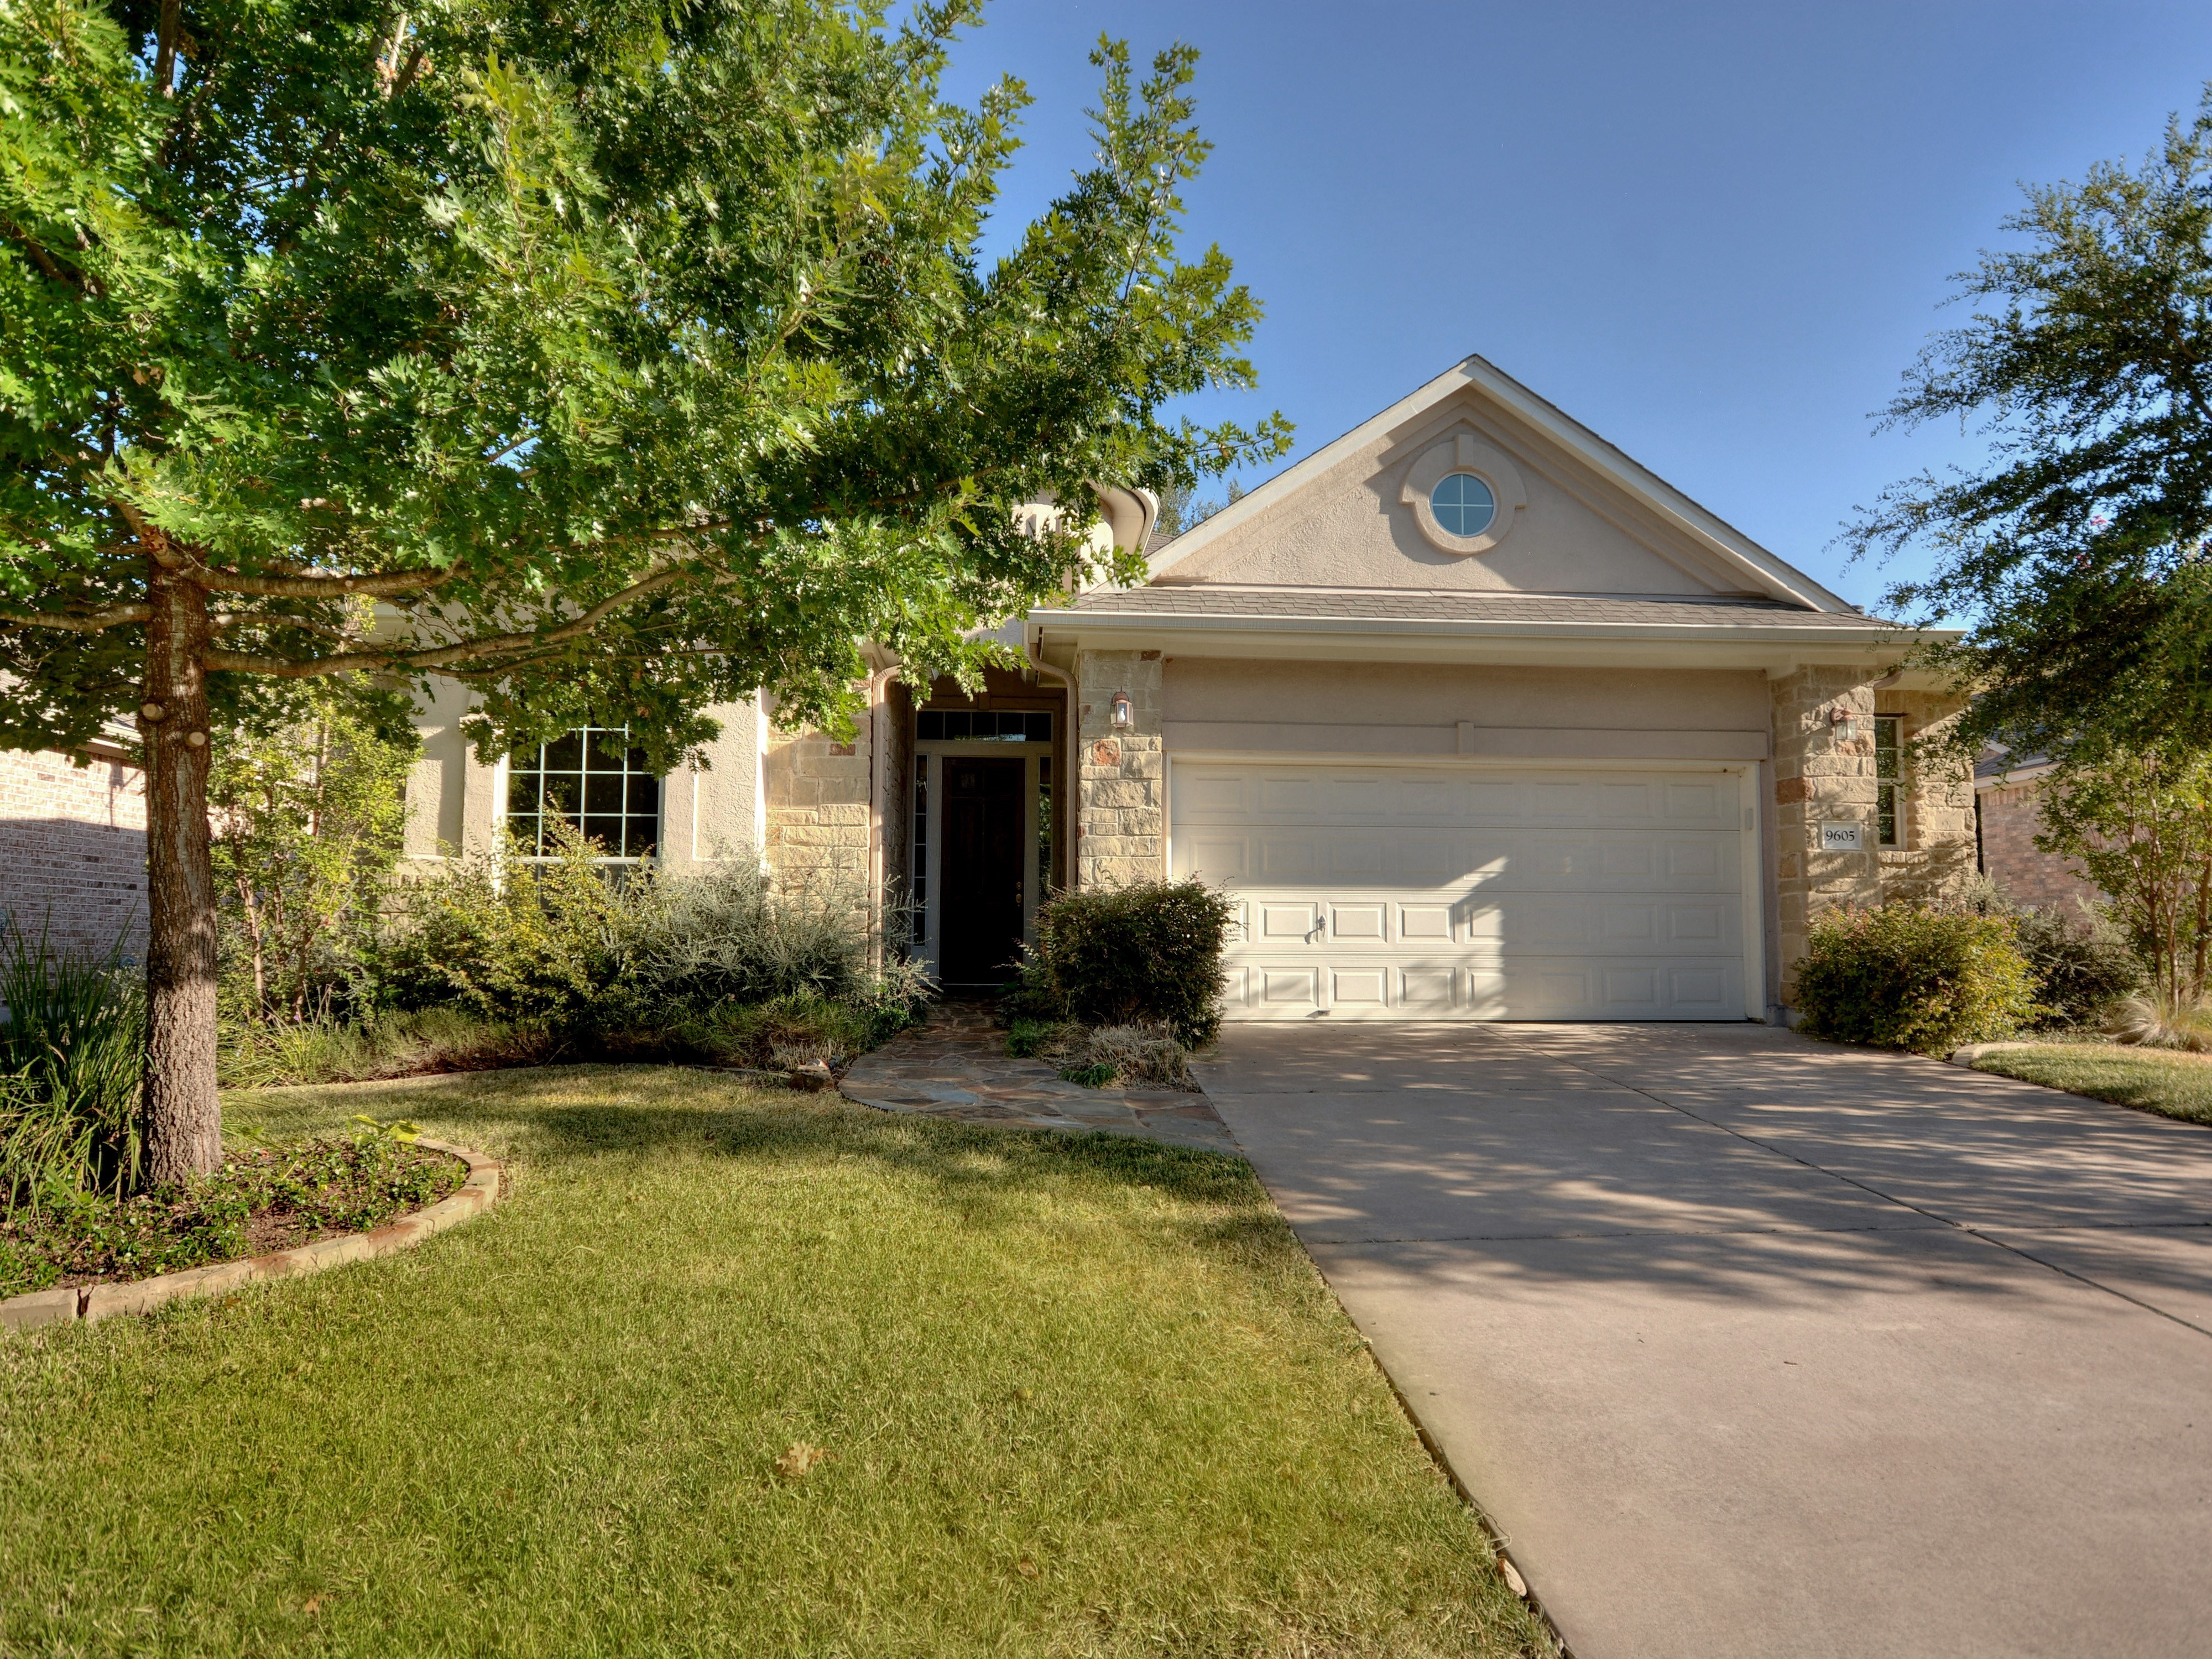 Single Family Home for Sale at Beautiful Single Story with Recent Updates 9605 Bundoran Dr Austin, Texas 78717 United States